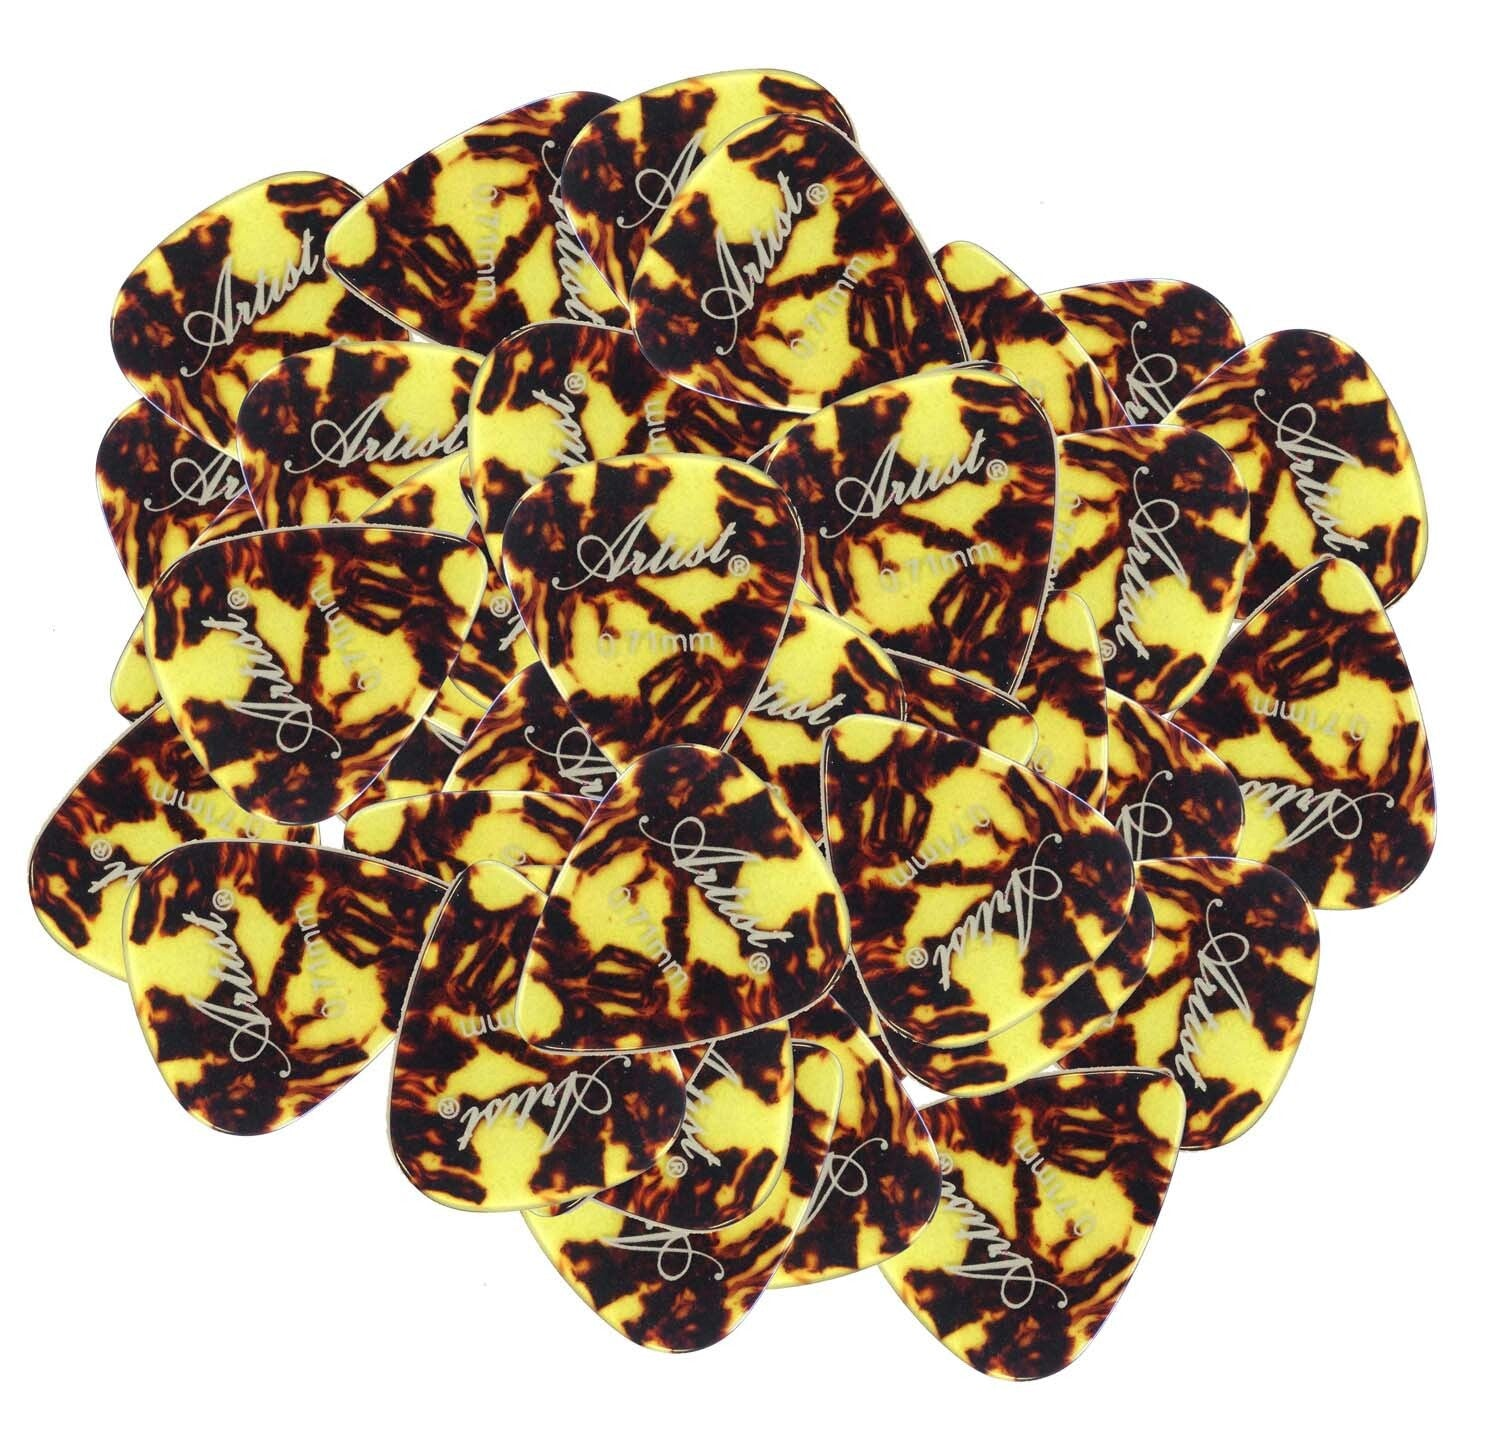 Artist AP12A0.71 Brown/Yellow Celluloid Guitar Picks -0.71mm 72 Pack